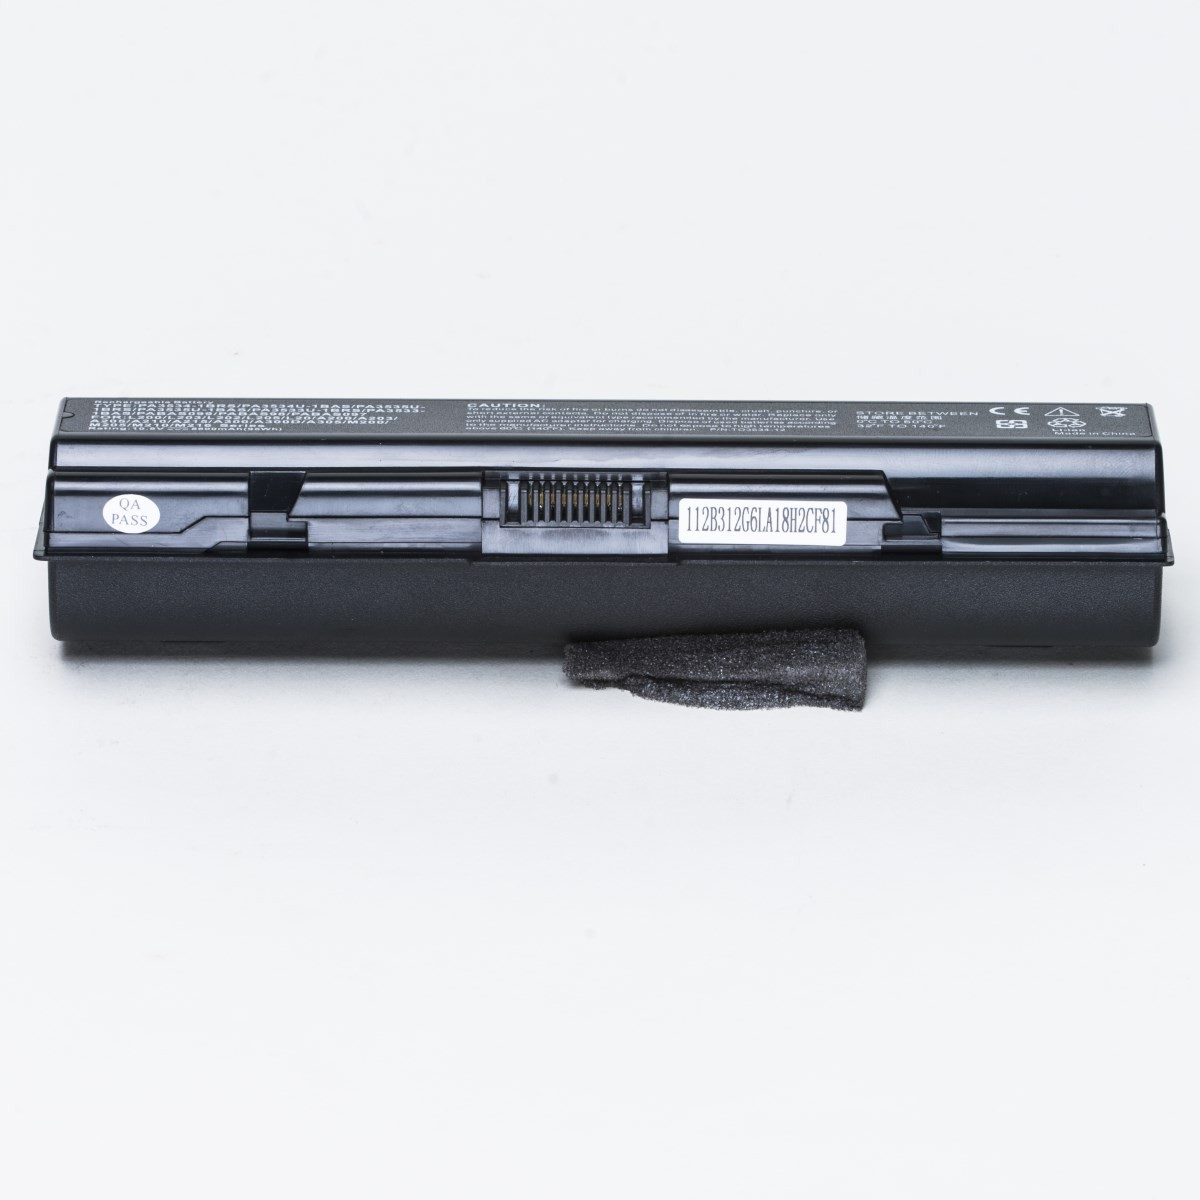 Toshiba Satellite A200 1um Laptop Battery Baterai M200 A205 L200 Pa3534 Pa3535 Black Qbek00327